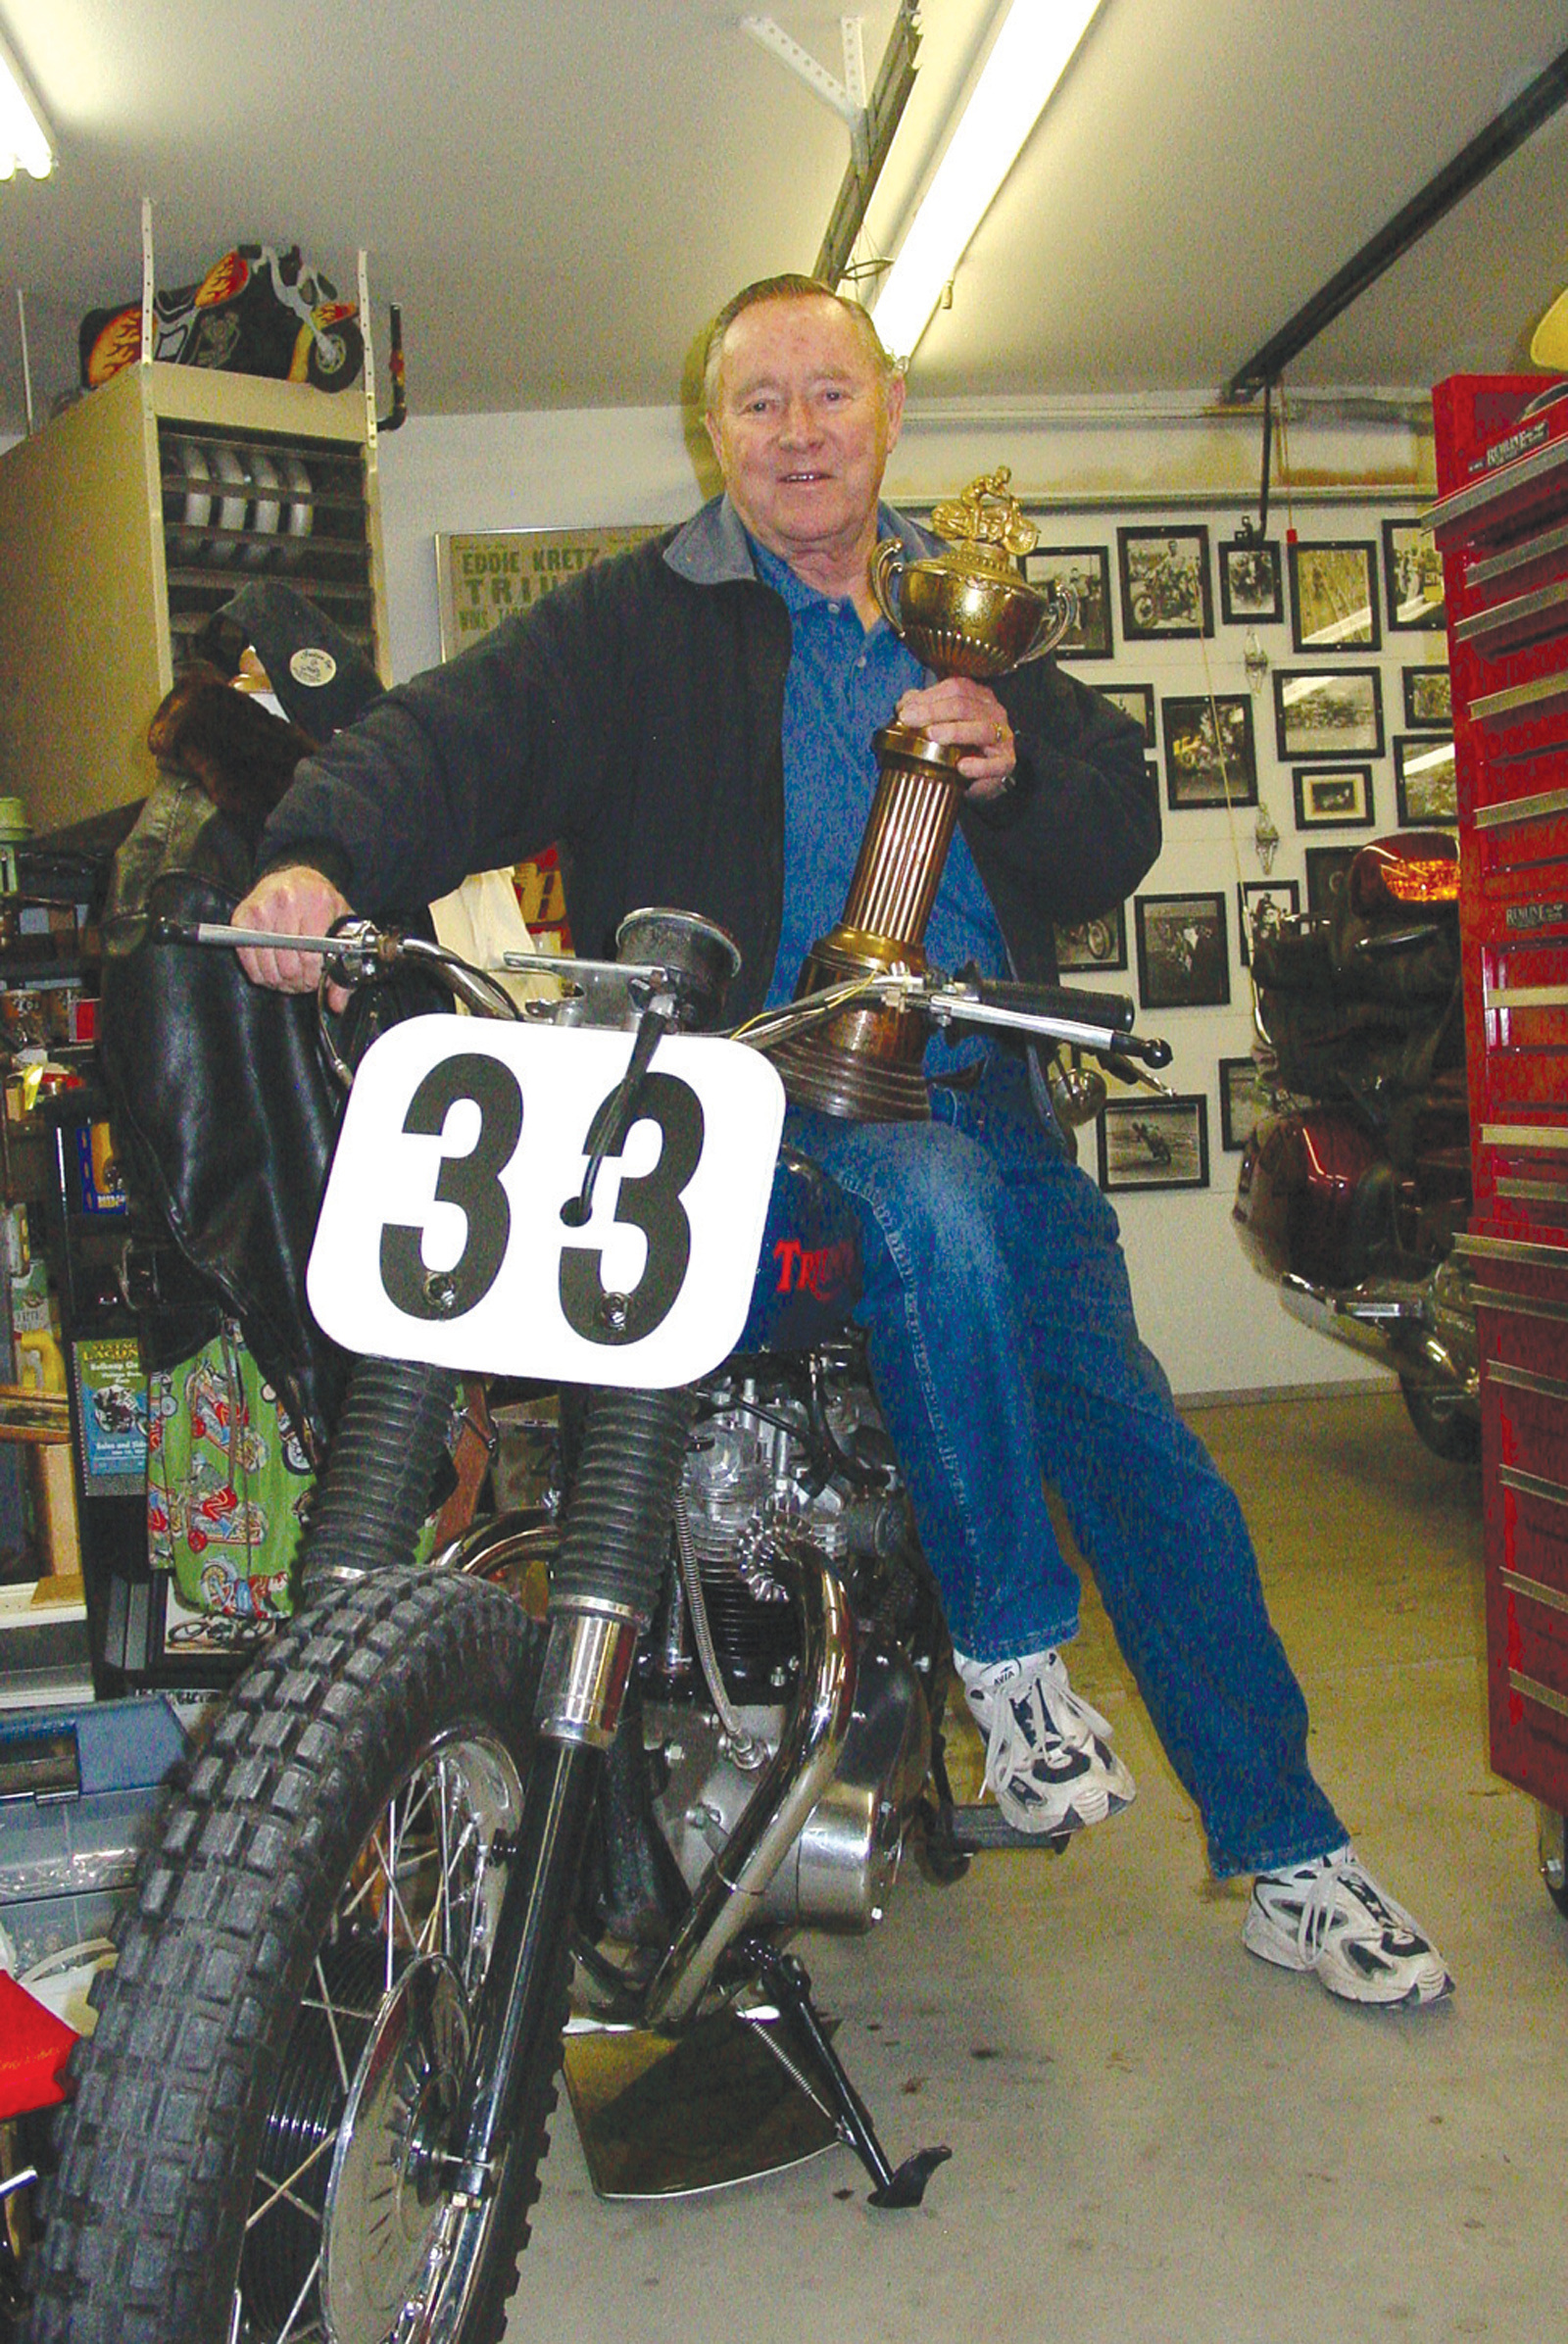 A Day at the Races: Motorcycle Racing Legend Ed Kretz Jr.